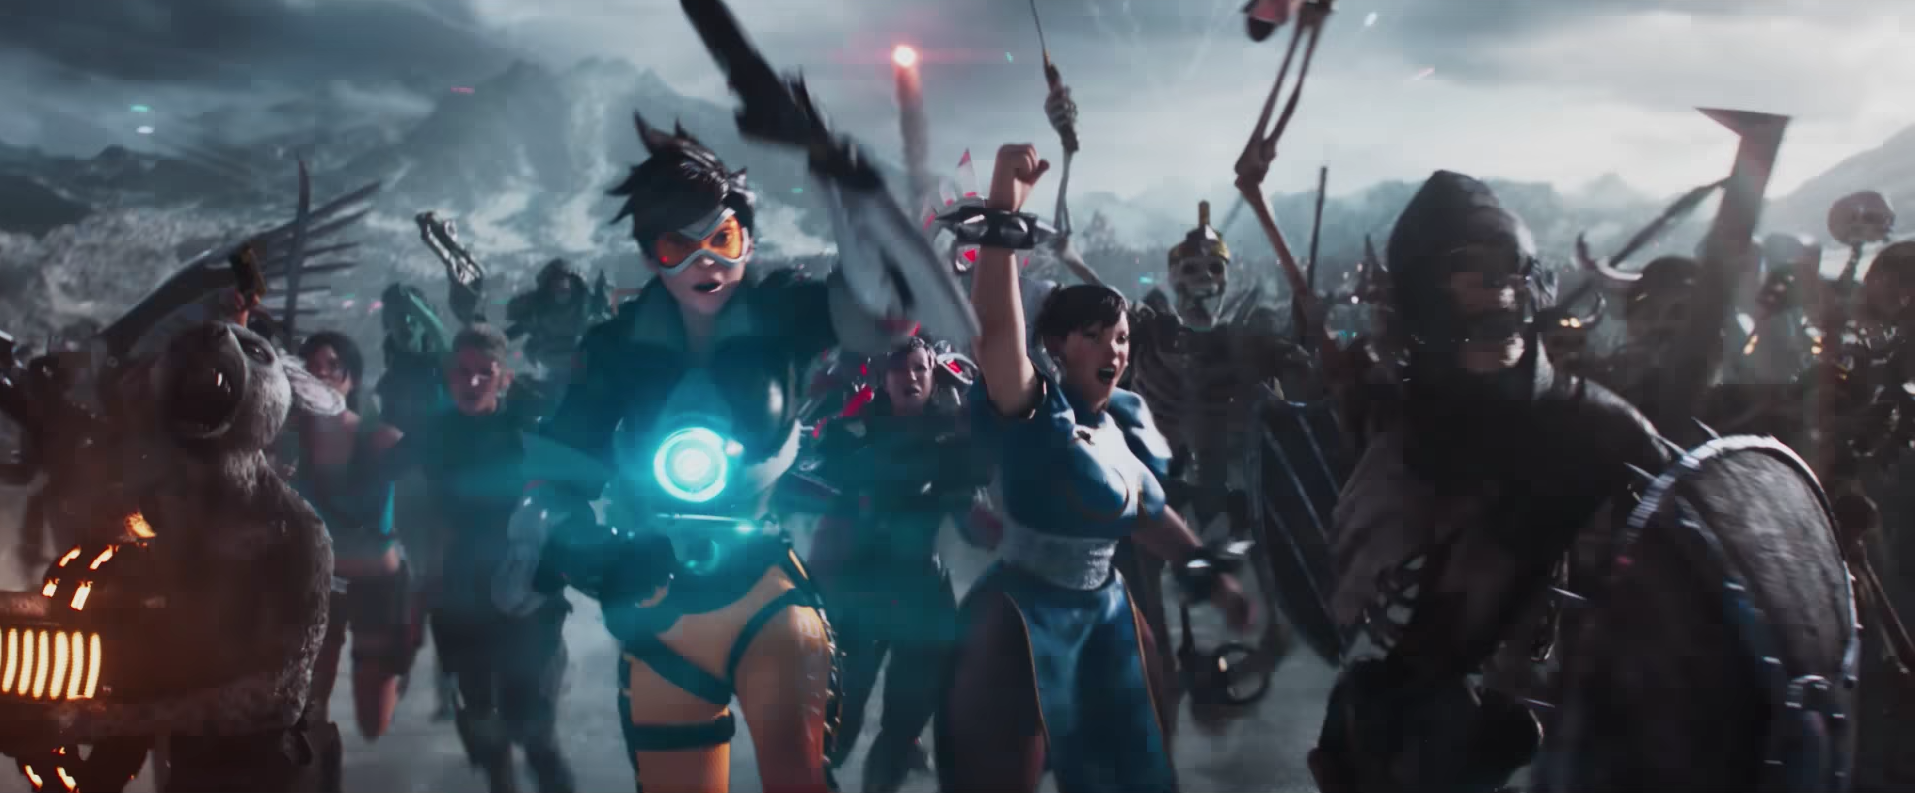 The New Ready Player One Trailer Is Filled With Video Game, Anime And Comic Book Characters